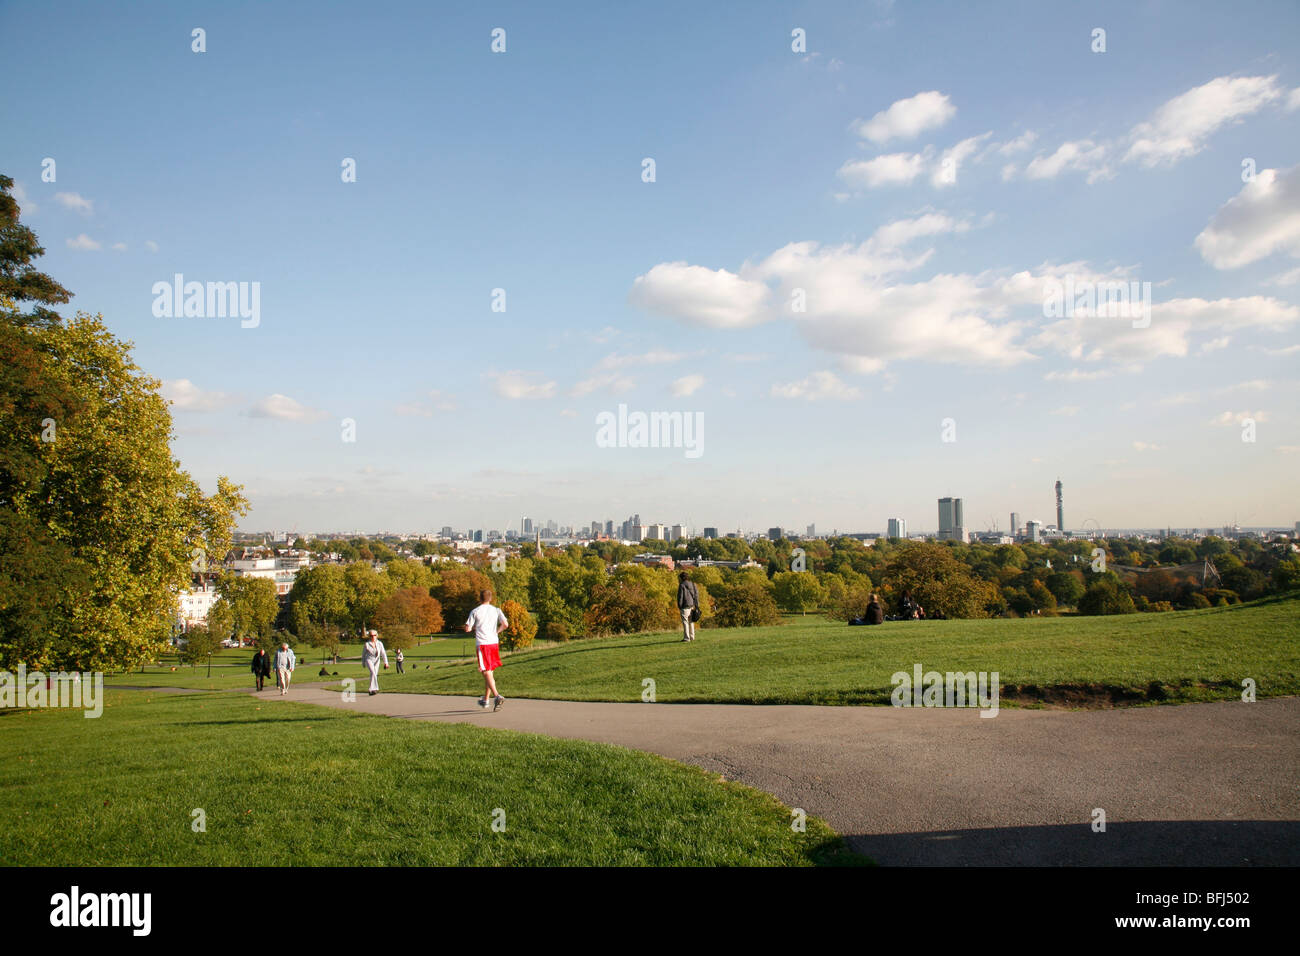 View from the top of Primrose Hill looking towards central London, UK Stock Photo